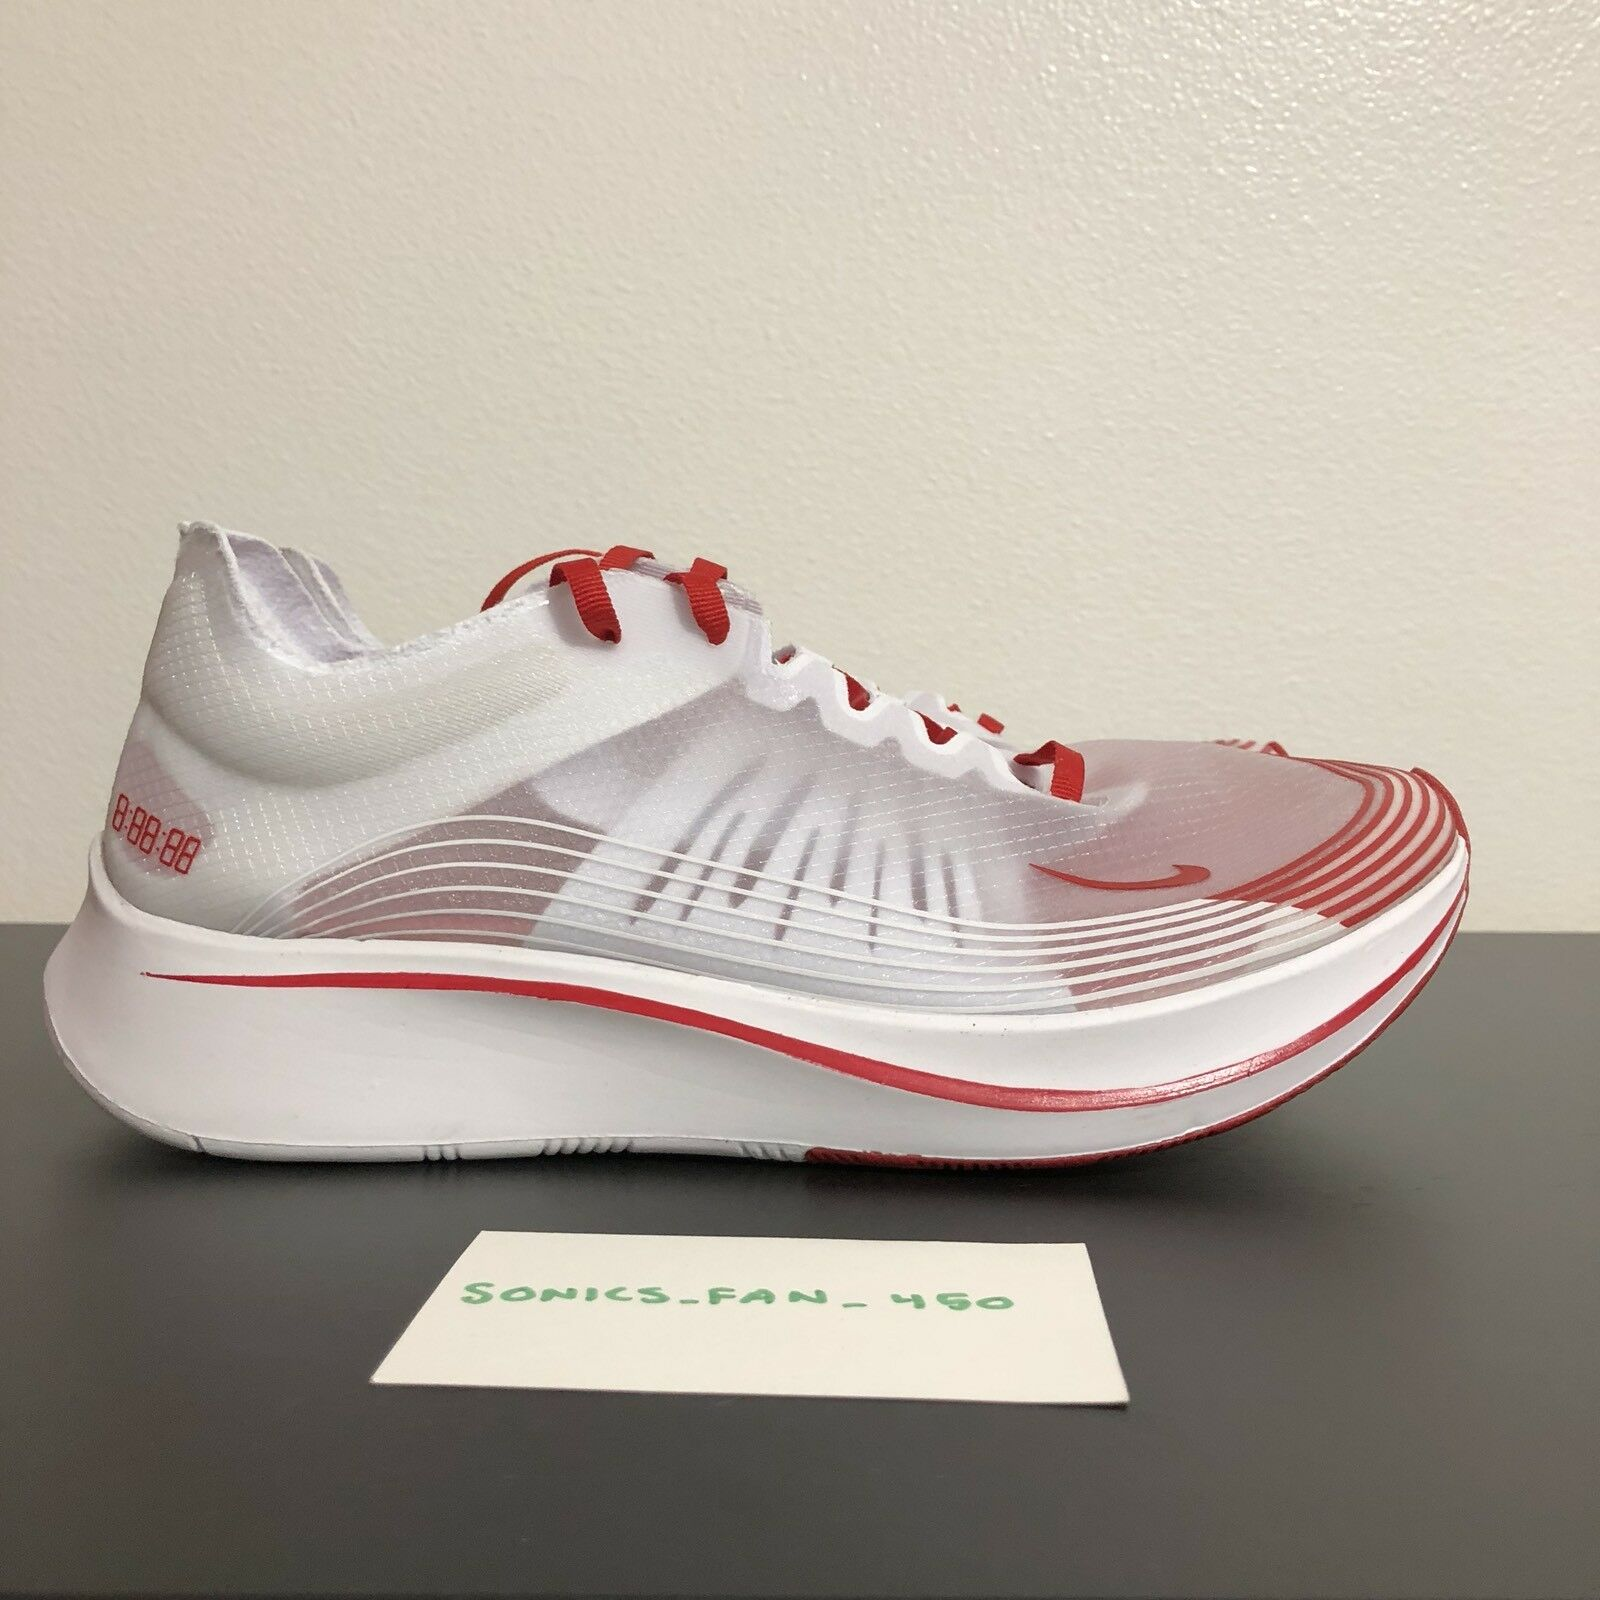 MEN'S NIKE ZOOM FLY SP RUNNING SHOES TOKYO WHITE RED AJ9282-100 SIZE 8.5